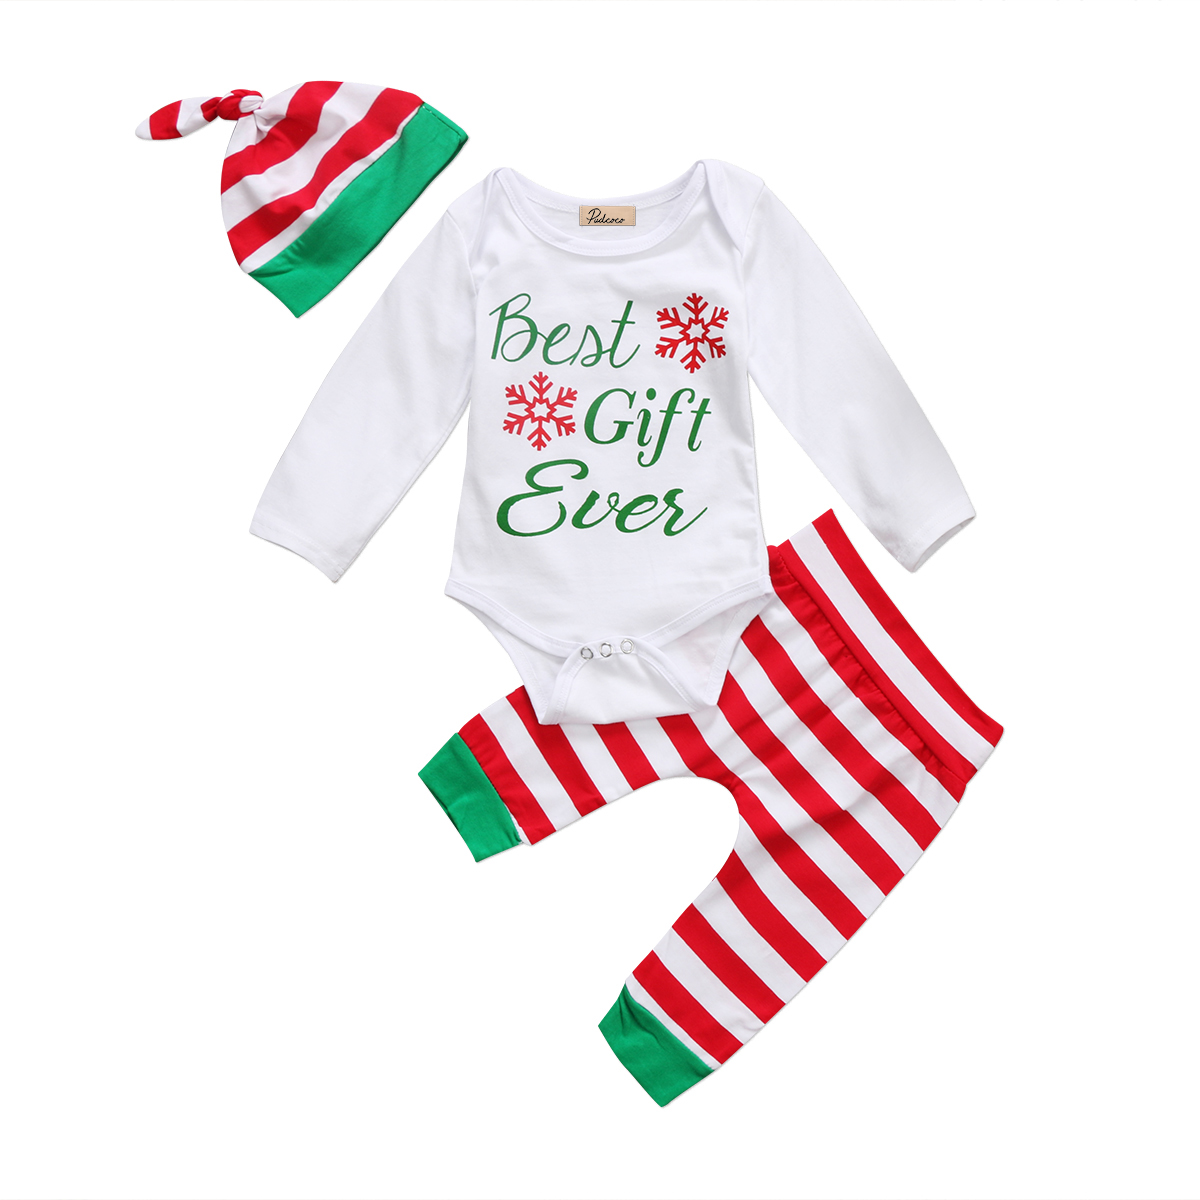 2PCS Baby Christmas Clothing Sets Newborn Baby Boys Girls Tops Long Sleeve Romper Striped Pants Hat Outfits Set Xmas Clothes higole gole1 plus mini pc intel atom x5 z8350 quad core win 10 bluetooth 4 0 4g lpddr3 128gb 64g rom 5g wifi smart tv box